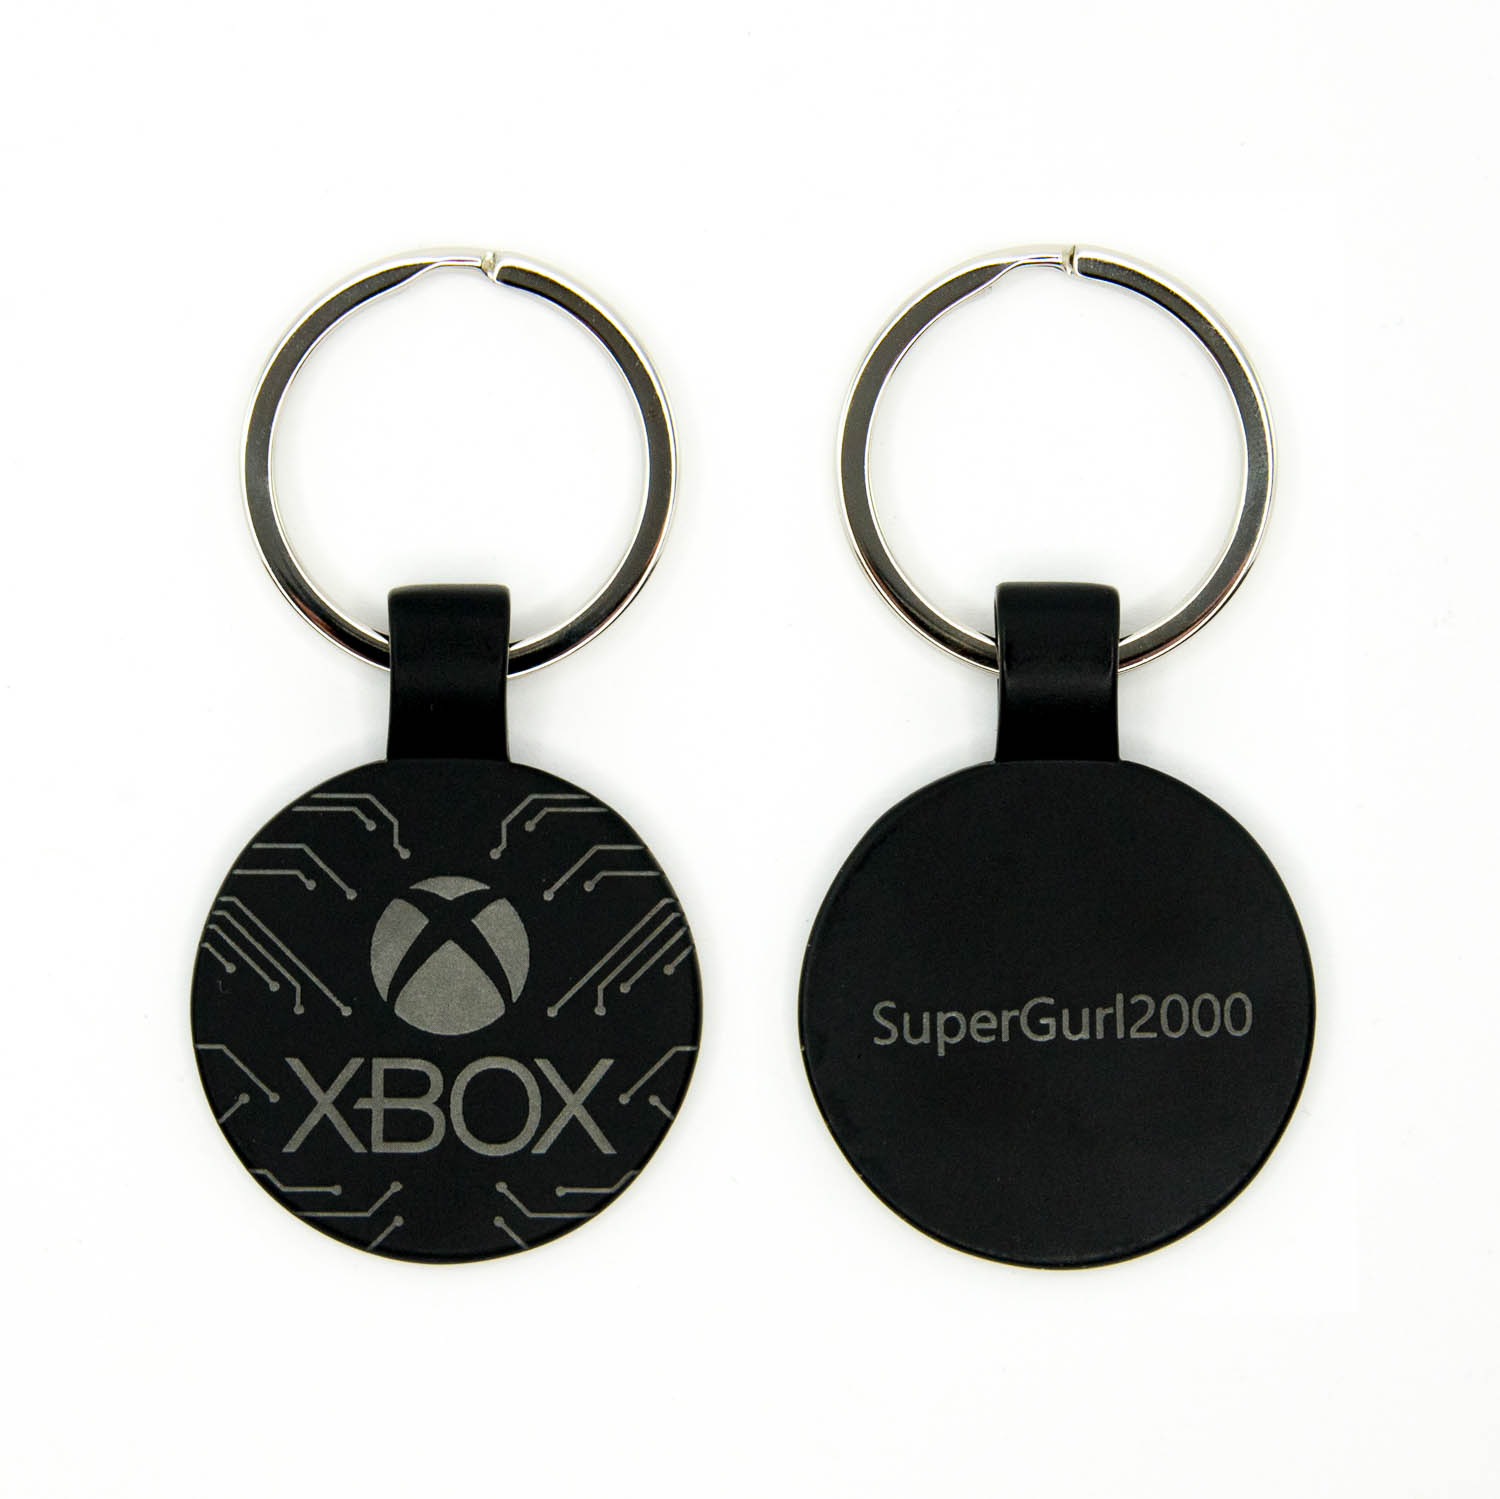 What:  Keychain personalization